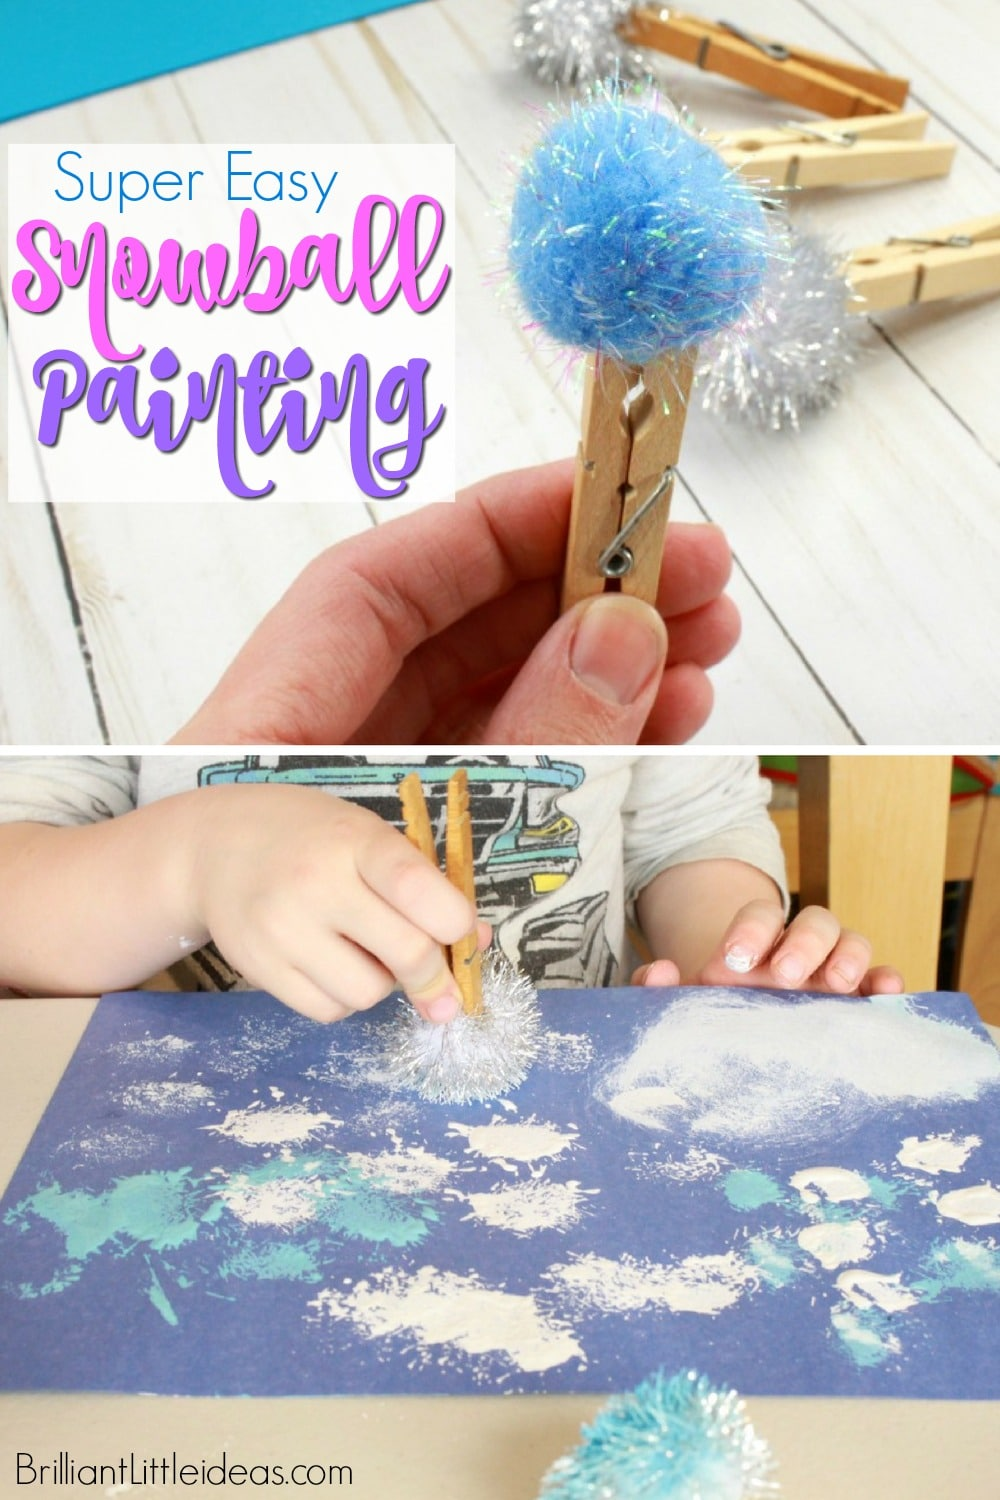 Super Easy Snowball Painting Brilliant Little Ideas